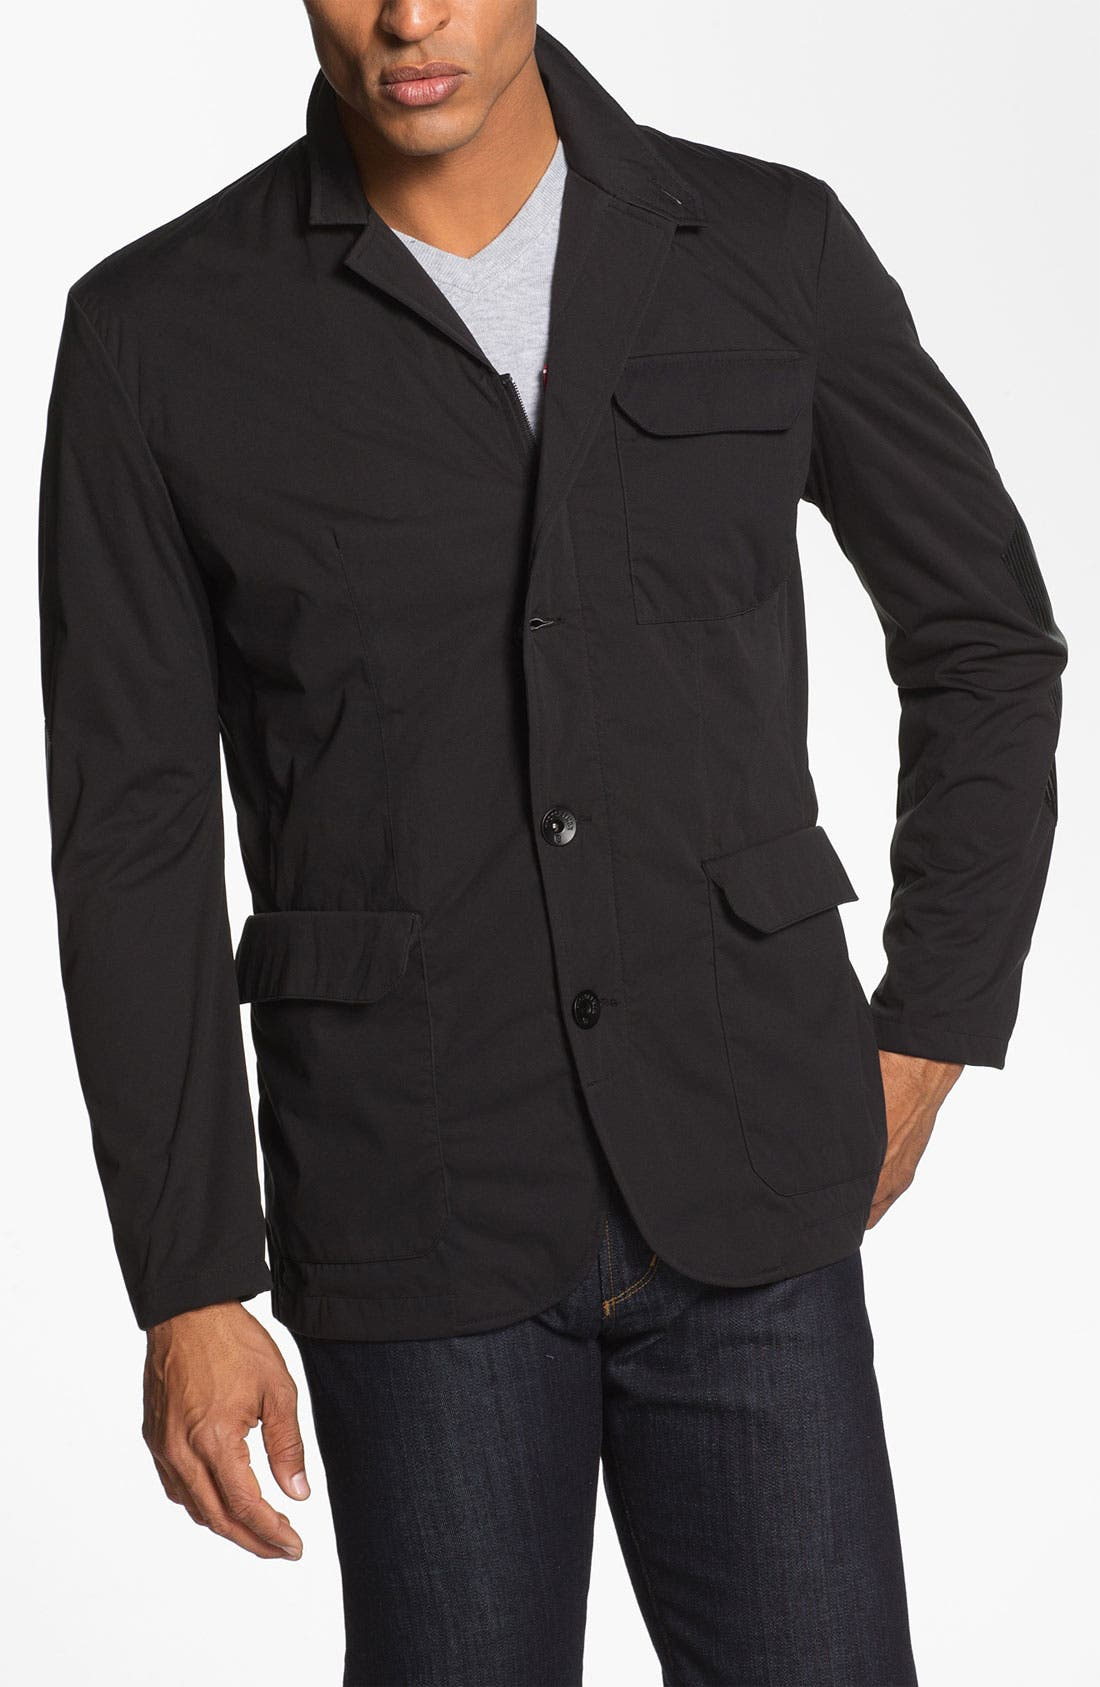 Alternate Image 1 Selected - Victorinox Swiss Army® 'Jet Stream' Blazer Style Jacket (Online Only)